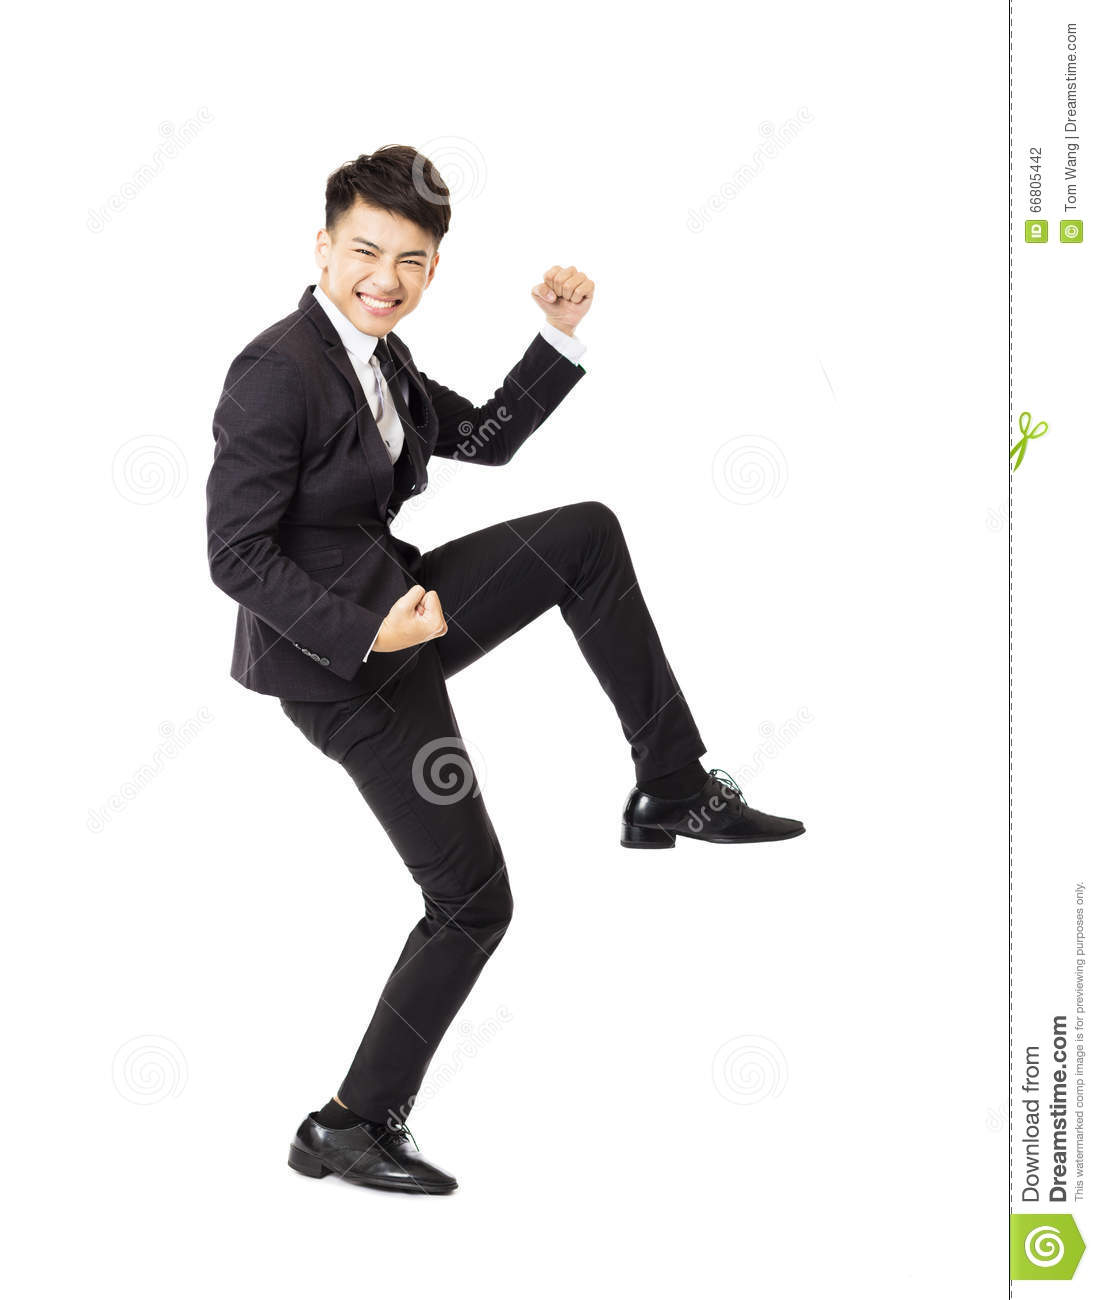 Happy young business man with successful gesture